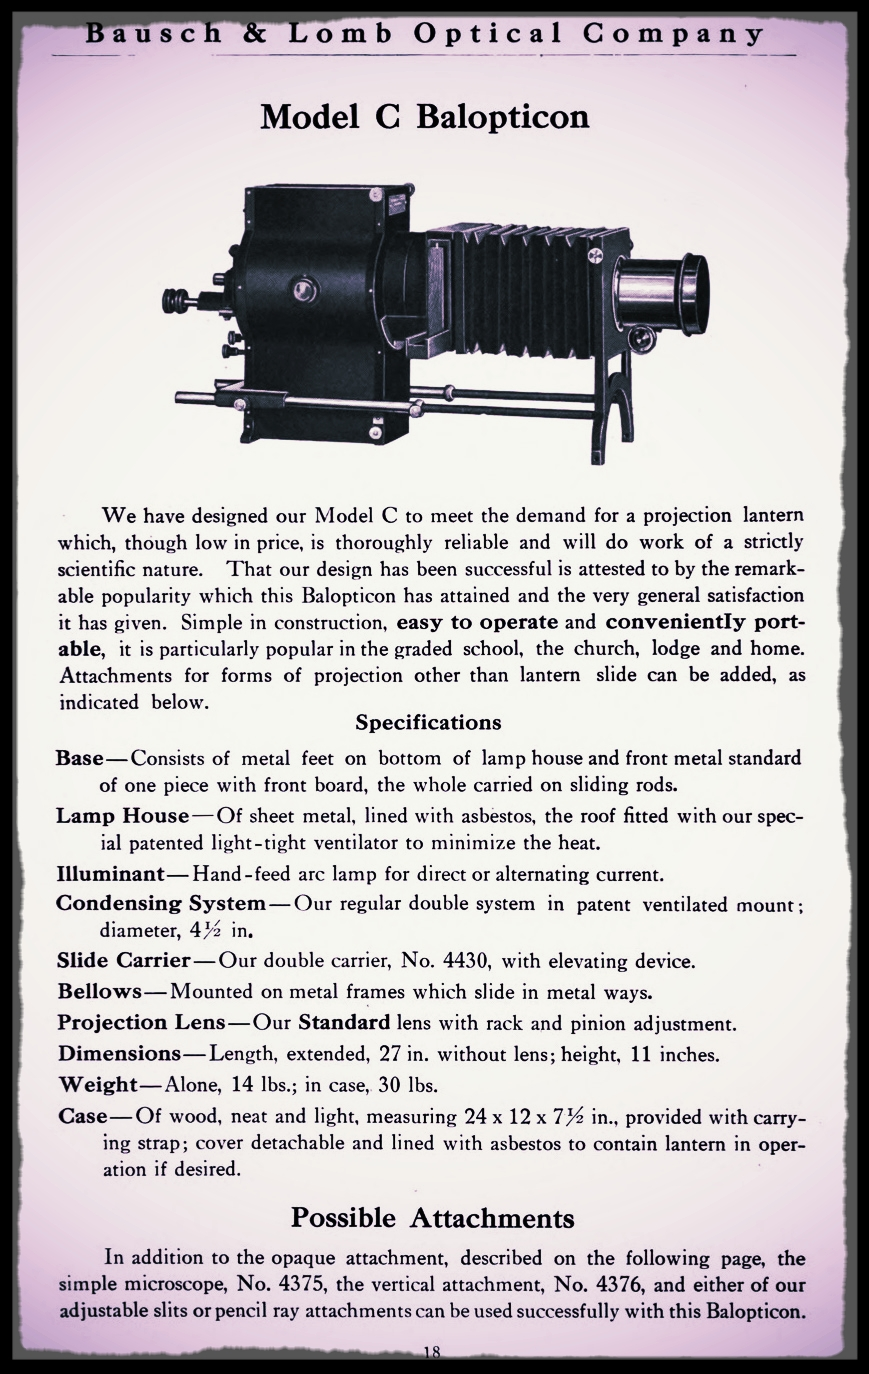 This is one of the projectors in our collection. This page is from a 1911 Bausch & Lomb catalog, which can be viewed in its entirety here on HathiTrust.